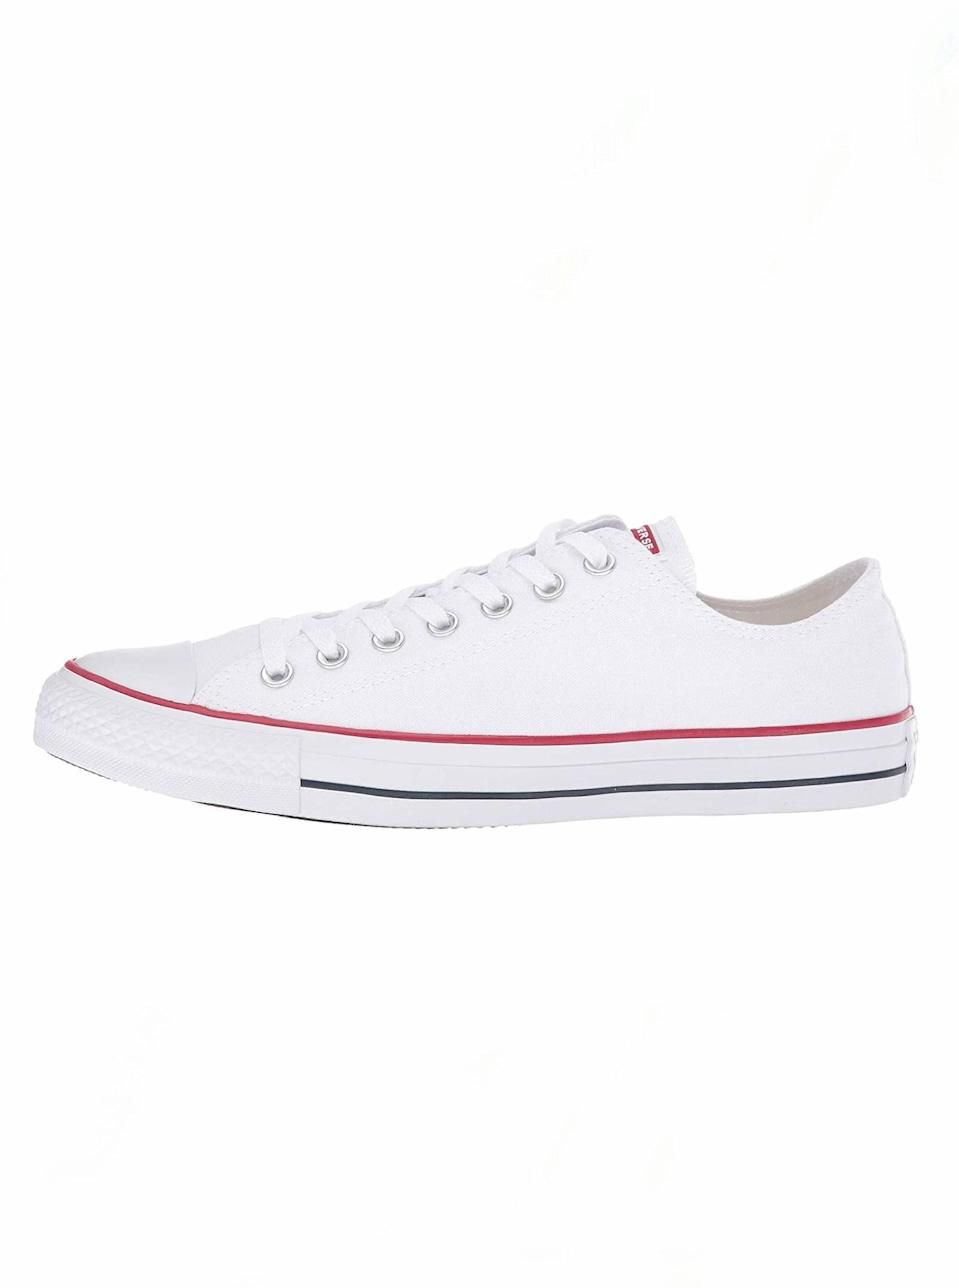 """$55, Zappos. <a href=""""https://www.zappos.com/p/converse-chuck-taylor-all-star-core-ox-optical-white/product/108000/color/3124"""" rel=""""nofollow noopener"""" target=""""_blank"""" data-ylk=""""slk:Get it now!"""" class=""""link rapid-noclick-resp"""">Get it now!</a>"""